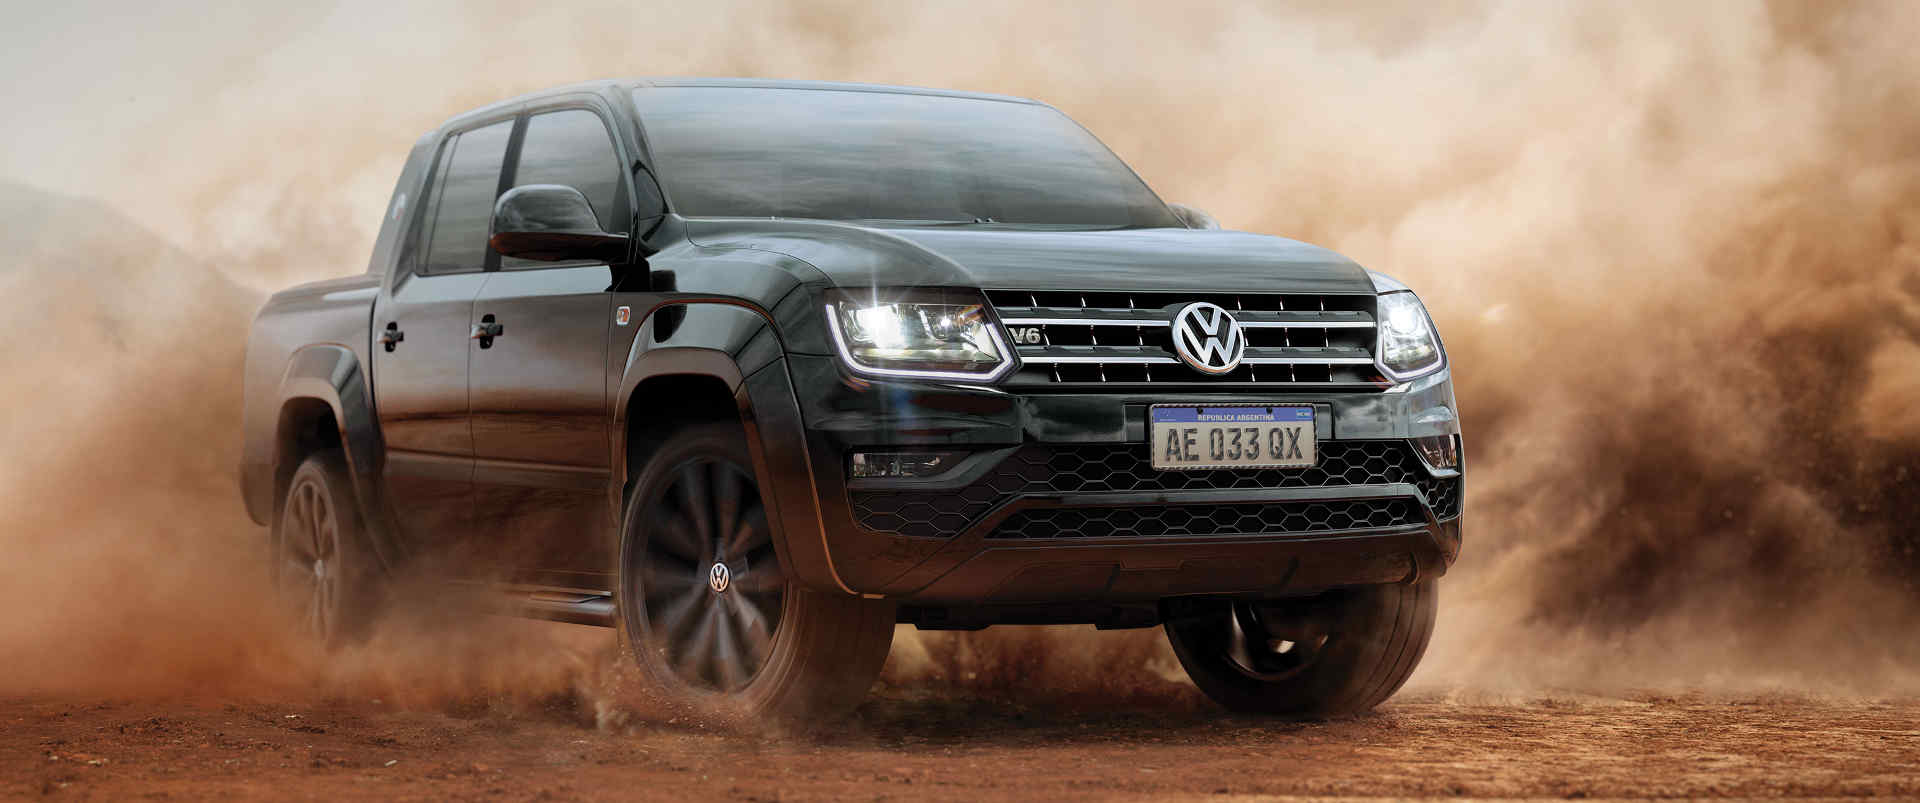 Volkswagen Amarok Extreme Black Style 2021: picape mais potente do Brasil